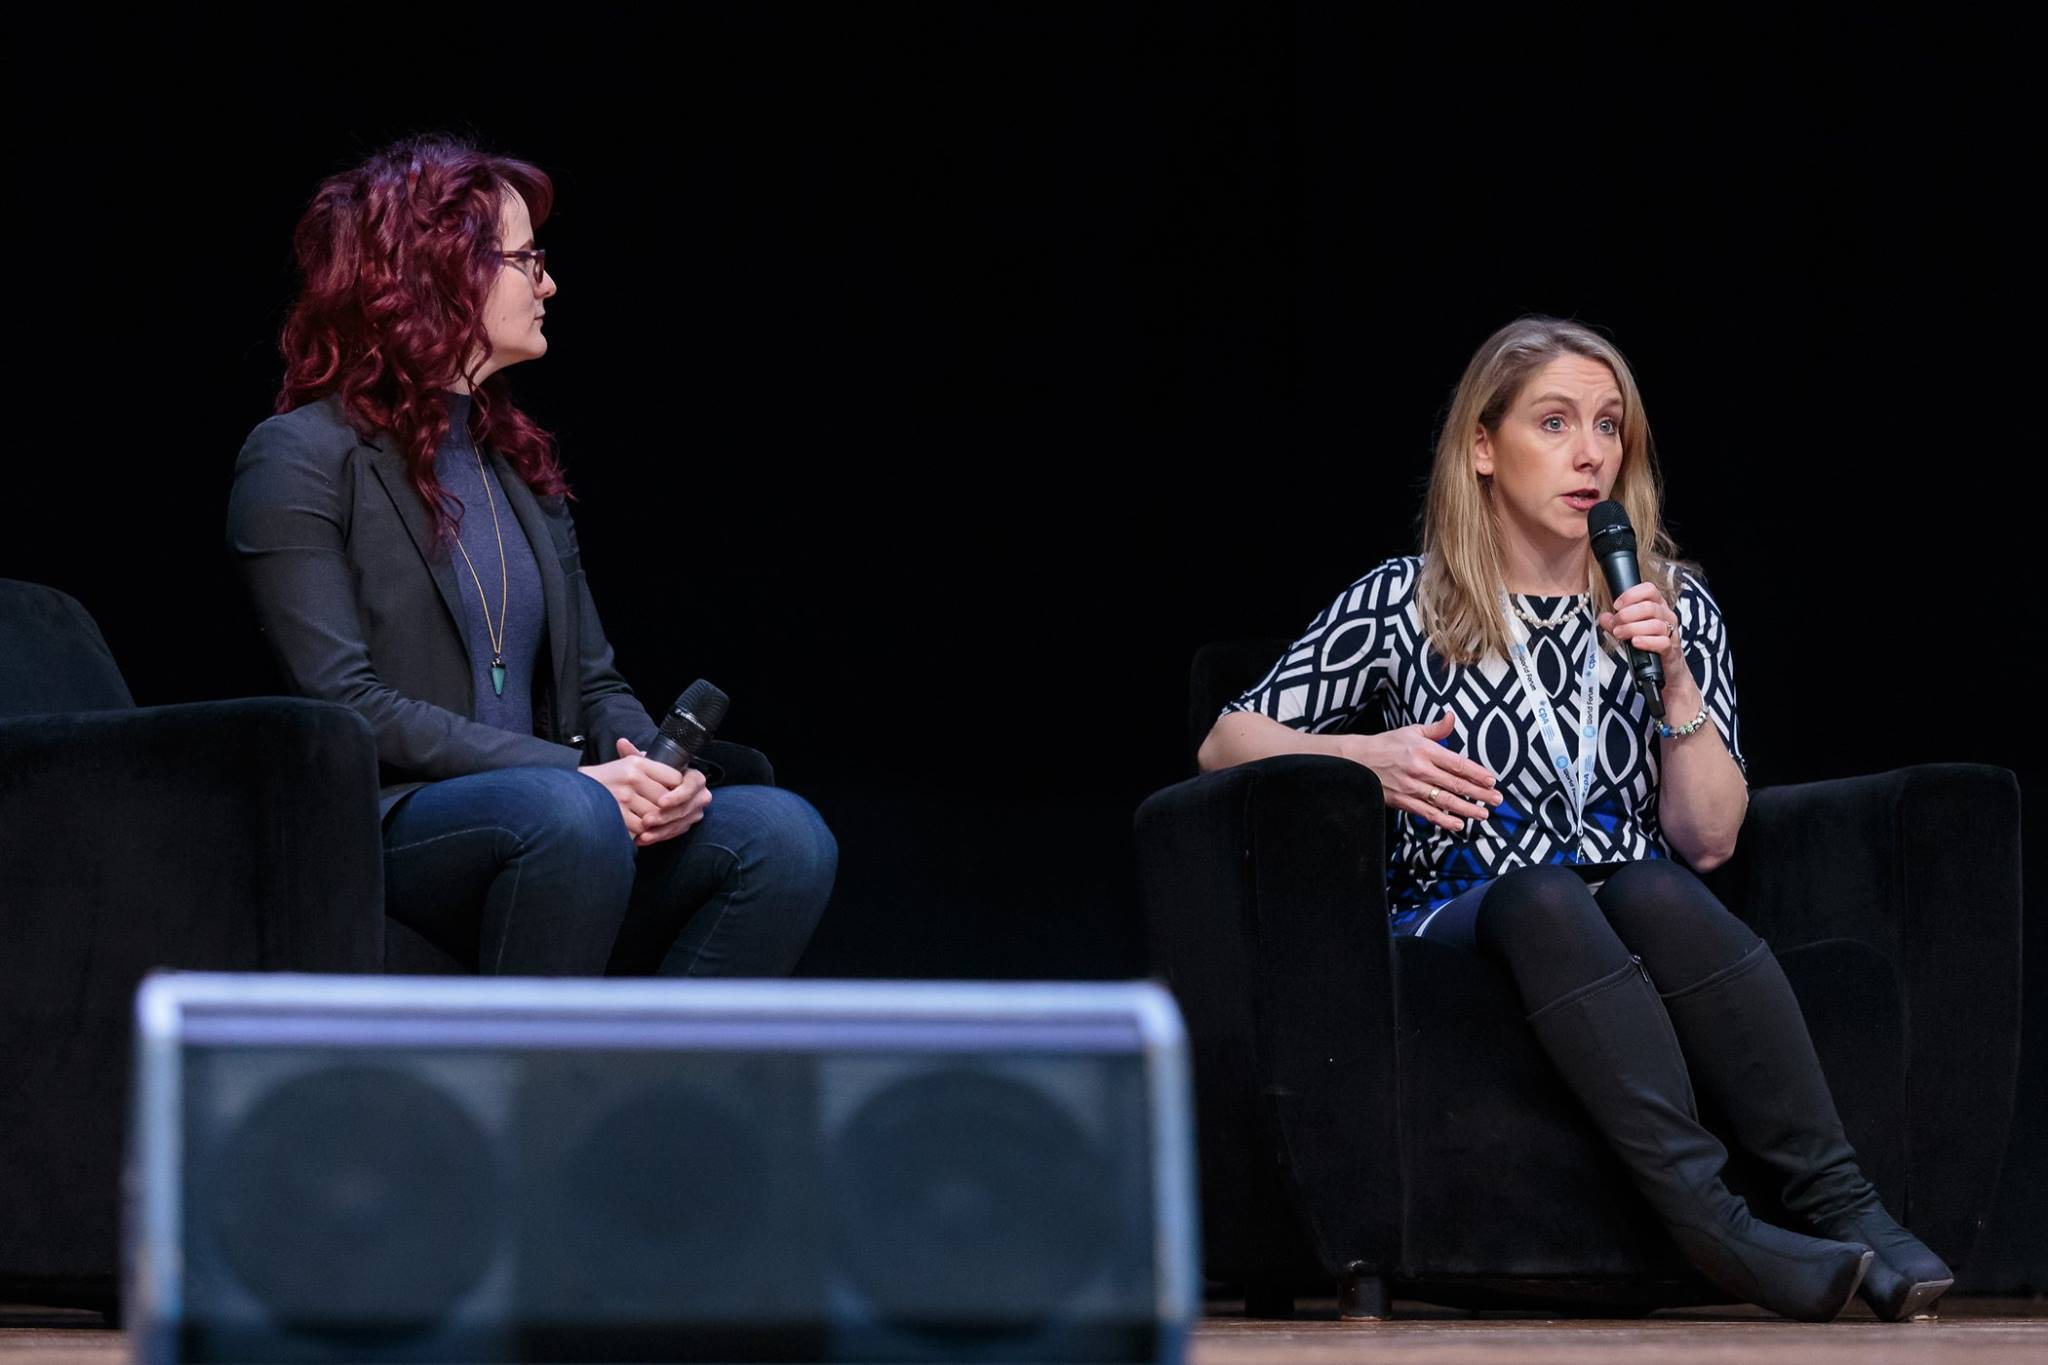 Chatting with Hilary Carter of the Blockchain Research Institute on stage at the AI World Forum, 2017.